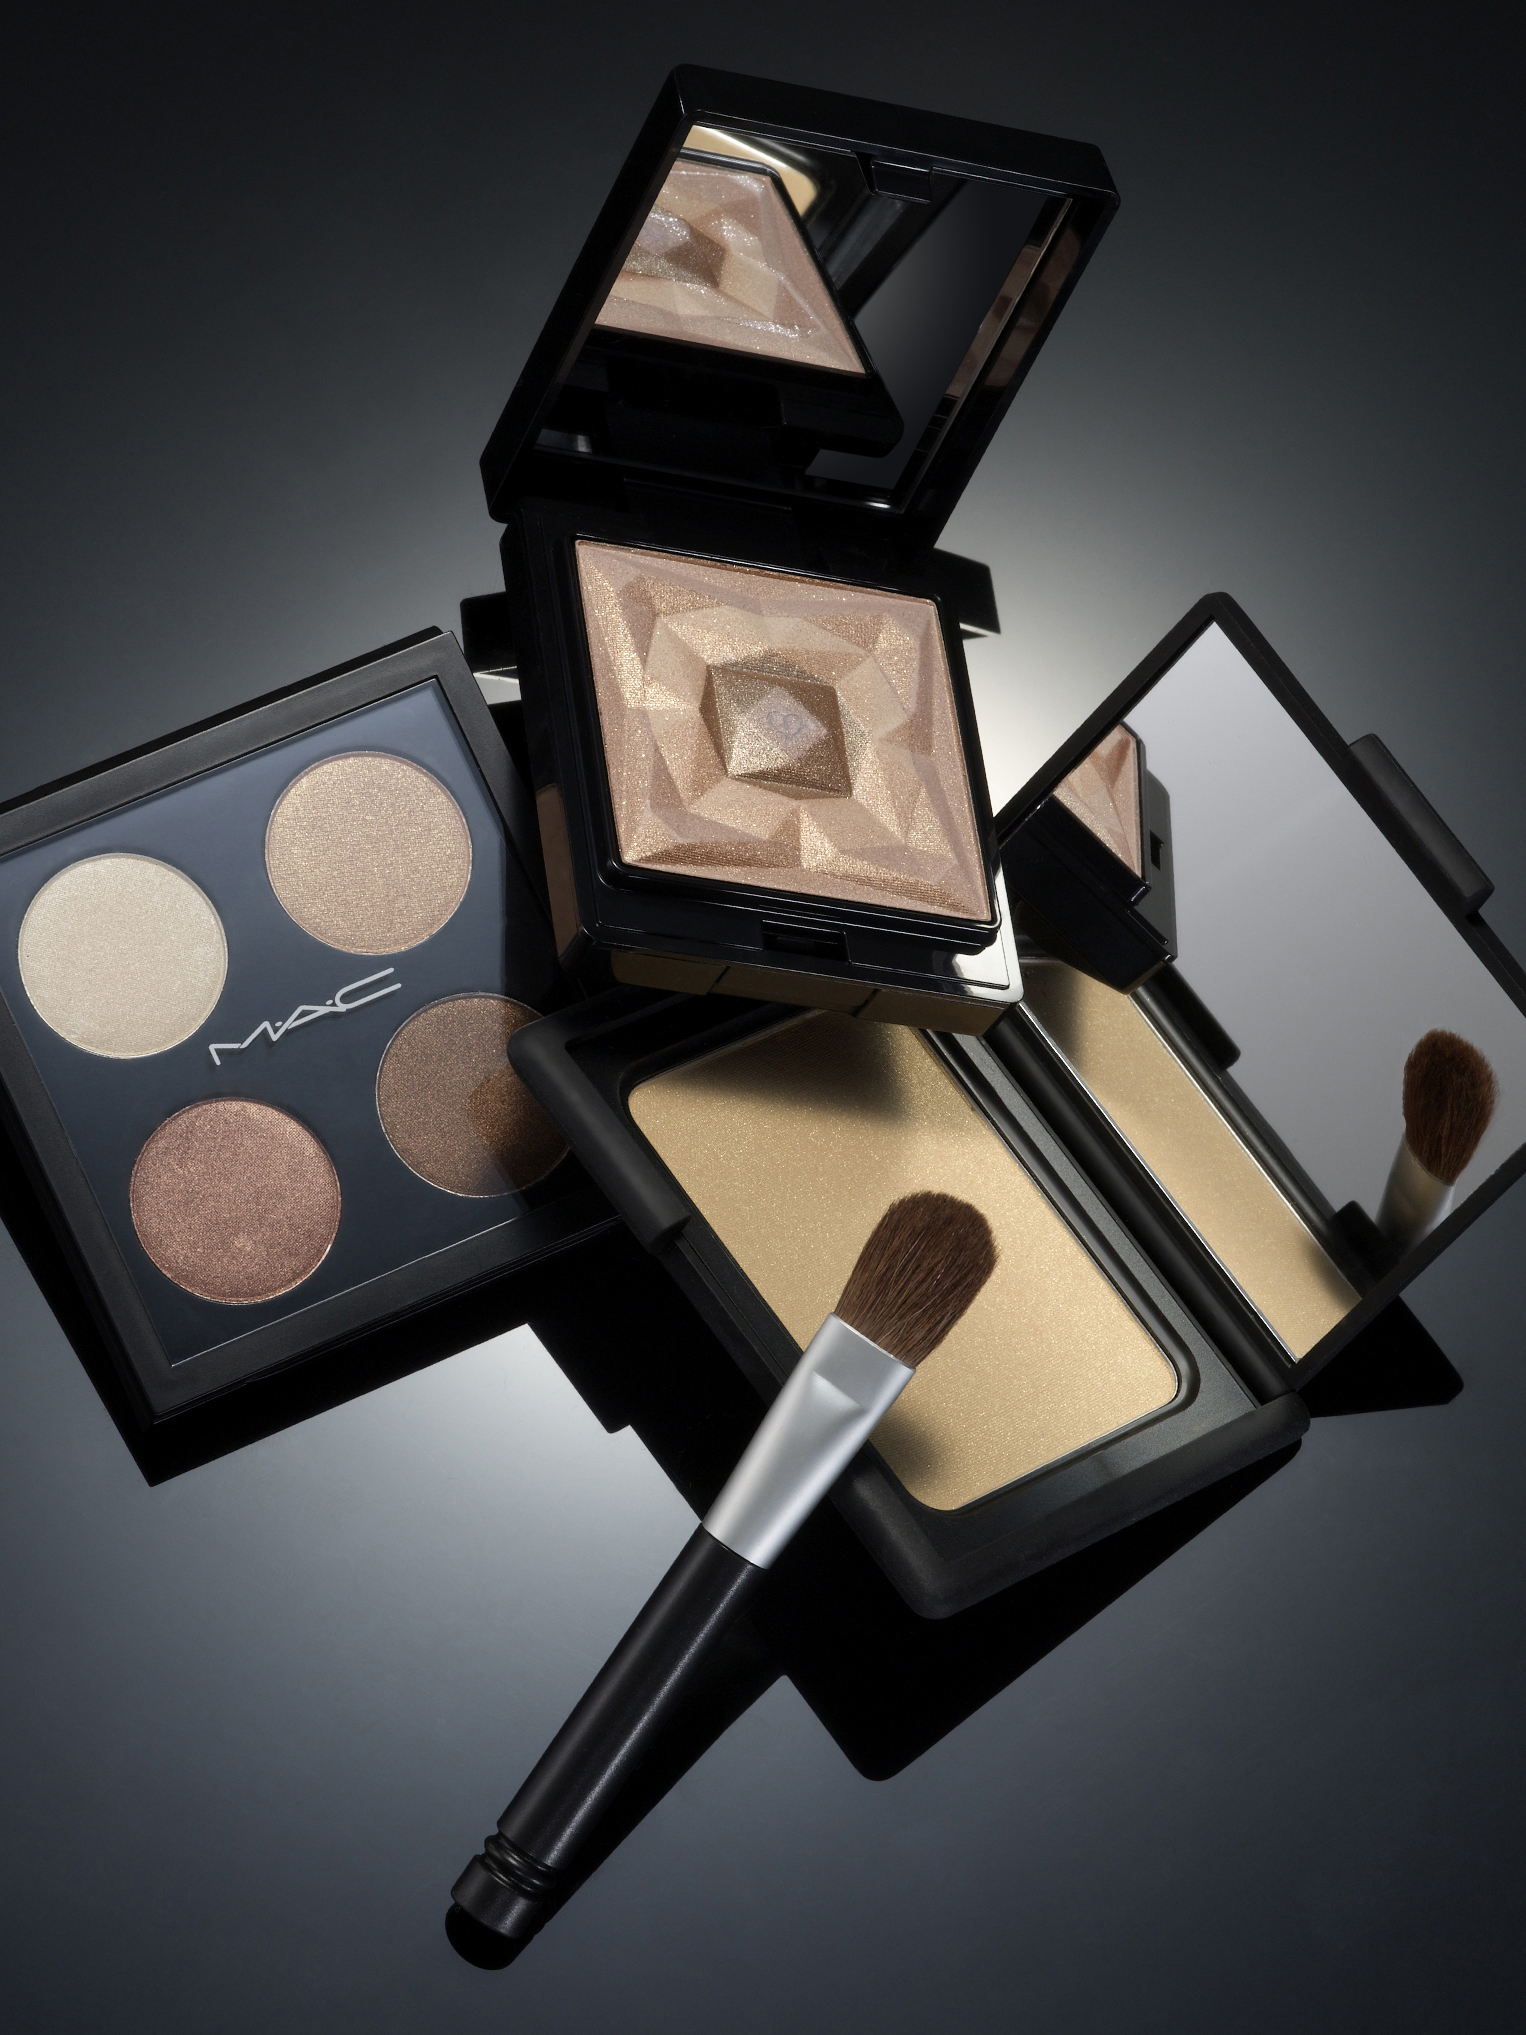 023-0127-MakeupGroup002_iPad.jpg